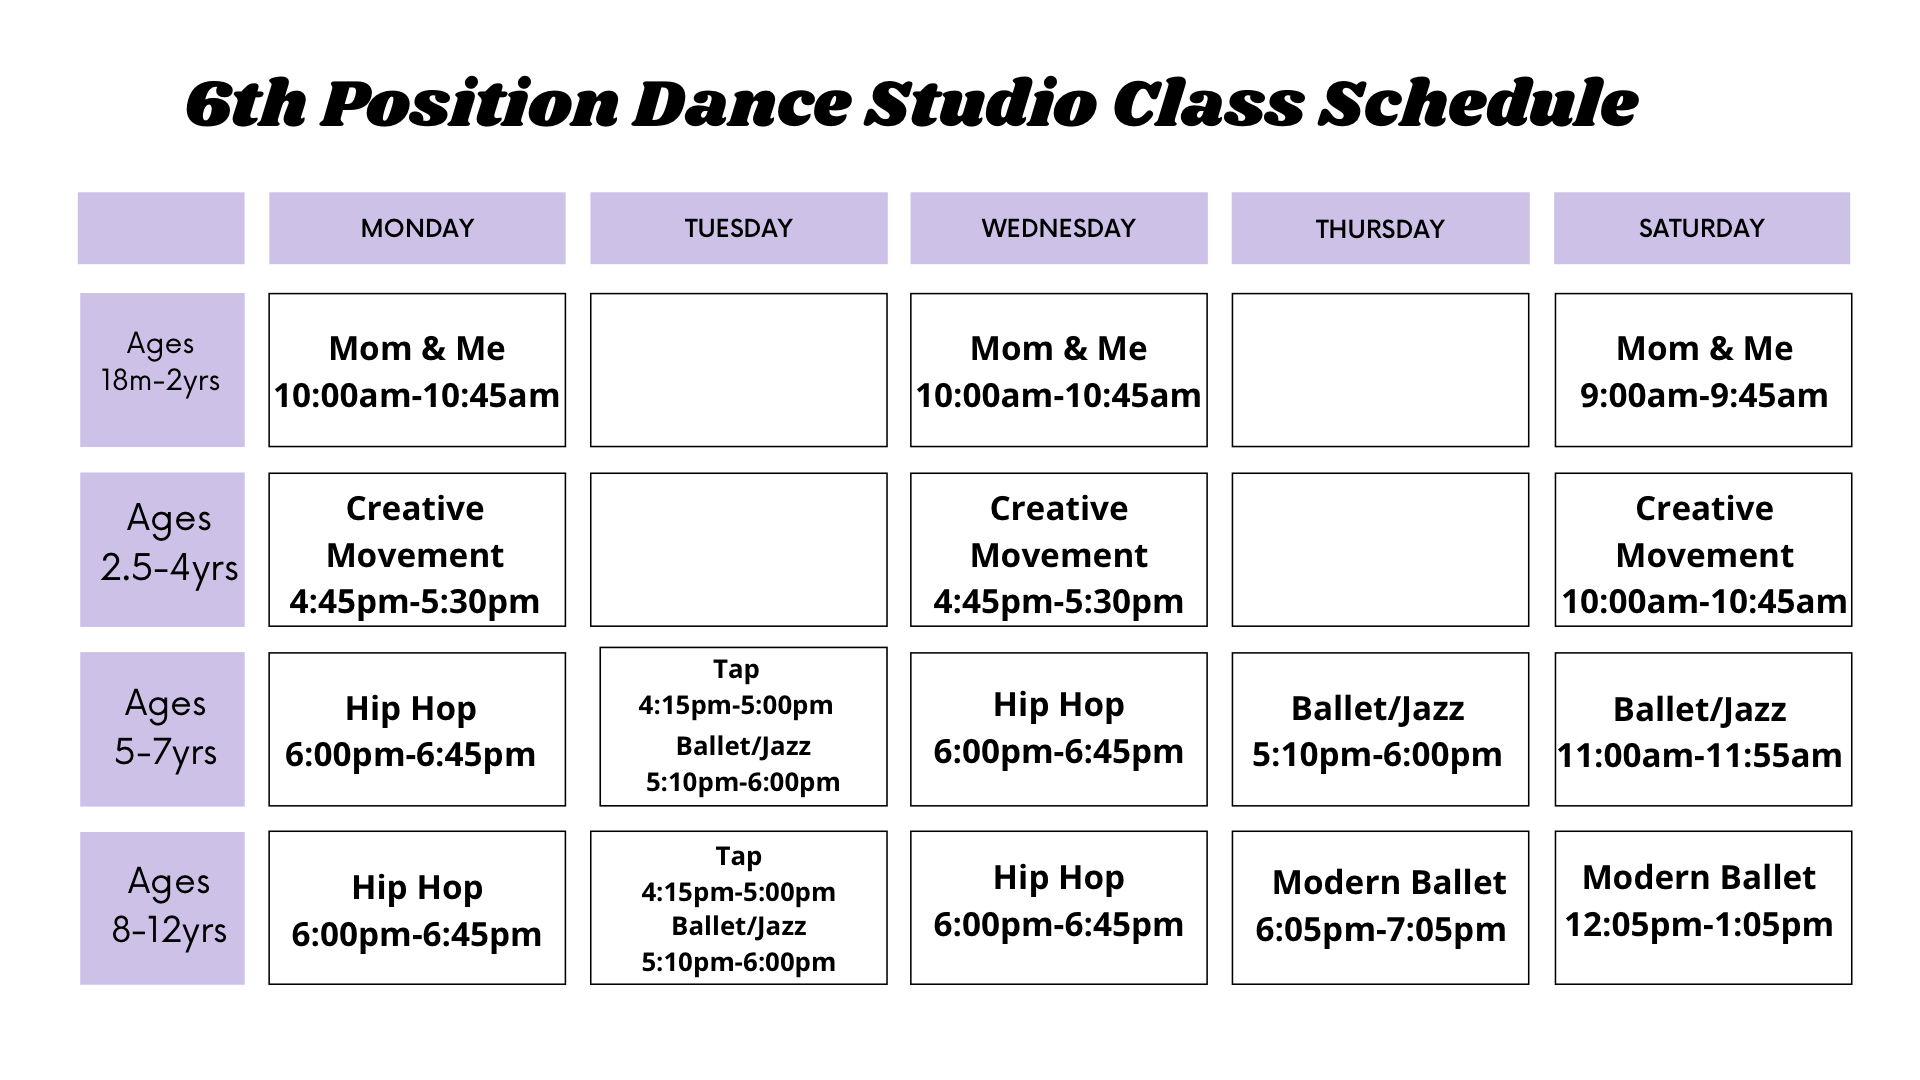 6th Position Dance Studio Class Schedule